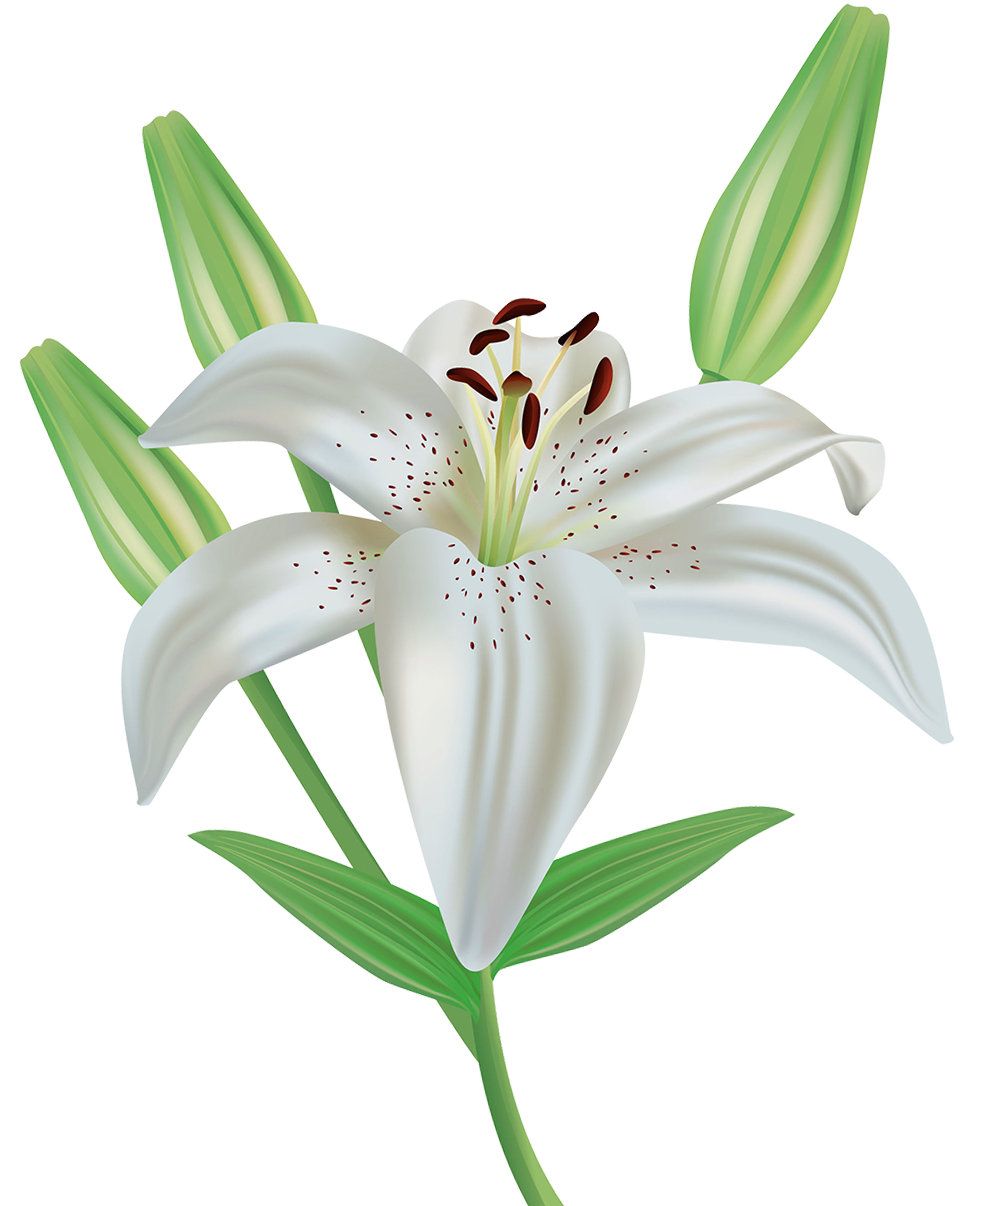 Flower clipart images graphic stock Lily Flower Clipart PNG Image | Gallery Yopriceville - High-Quality ... graphic stock